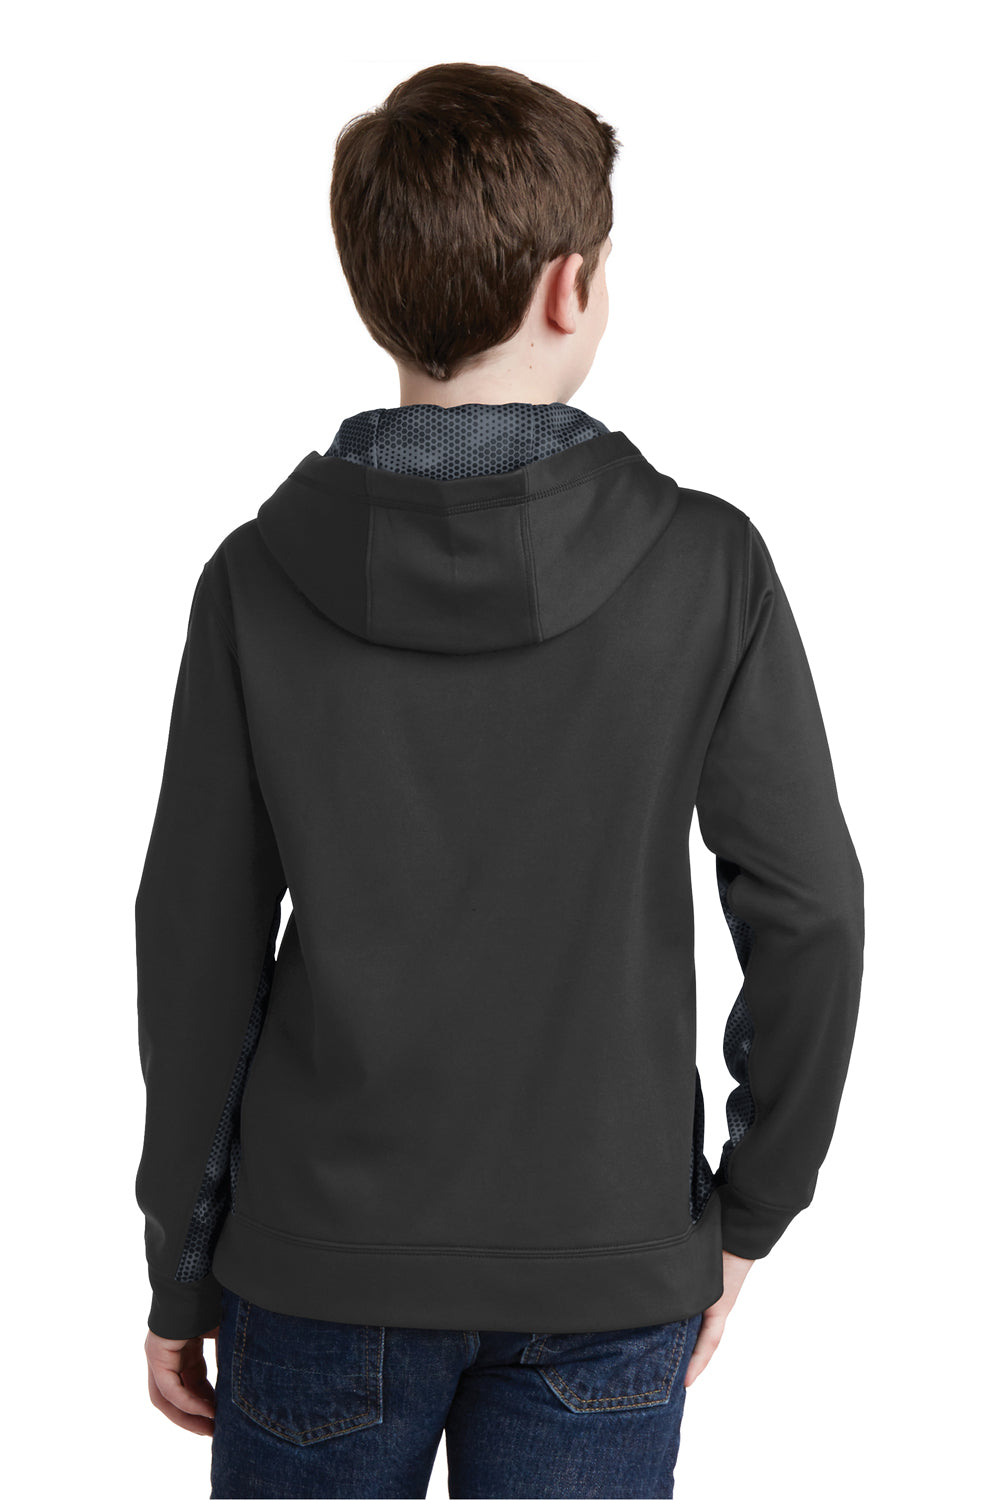 Sport-Tek YST239 Youth Sport-Wick CamoHex Moisture Wicking Fleece Hooded Sweatshirt Hoodie Black/Grey Back